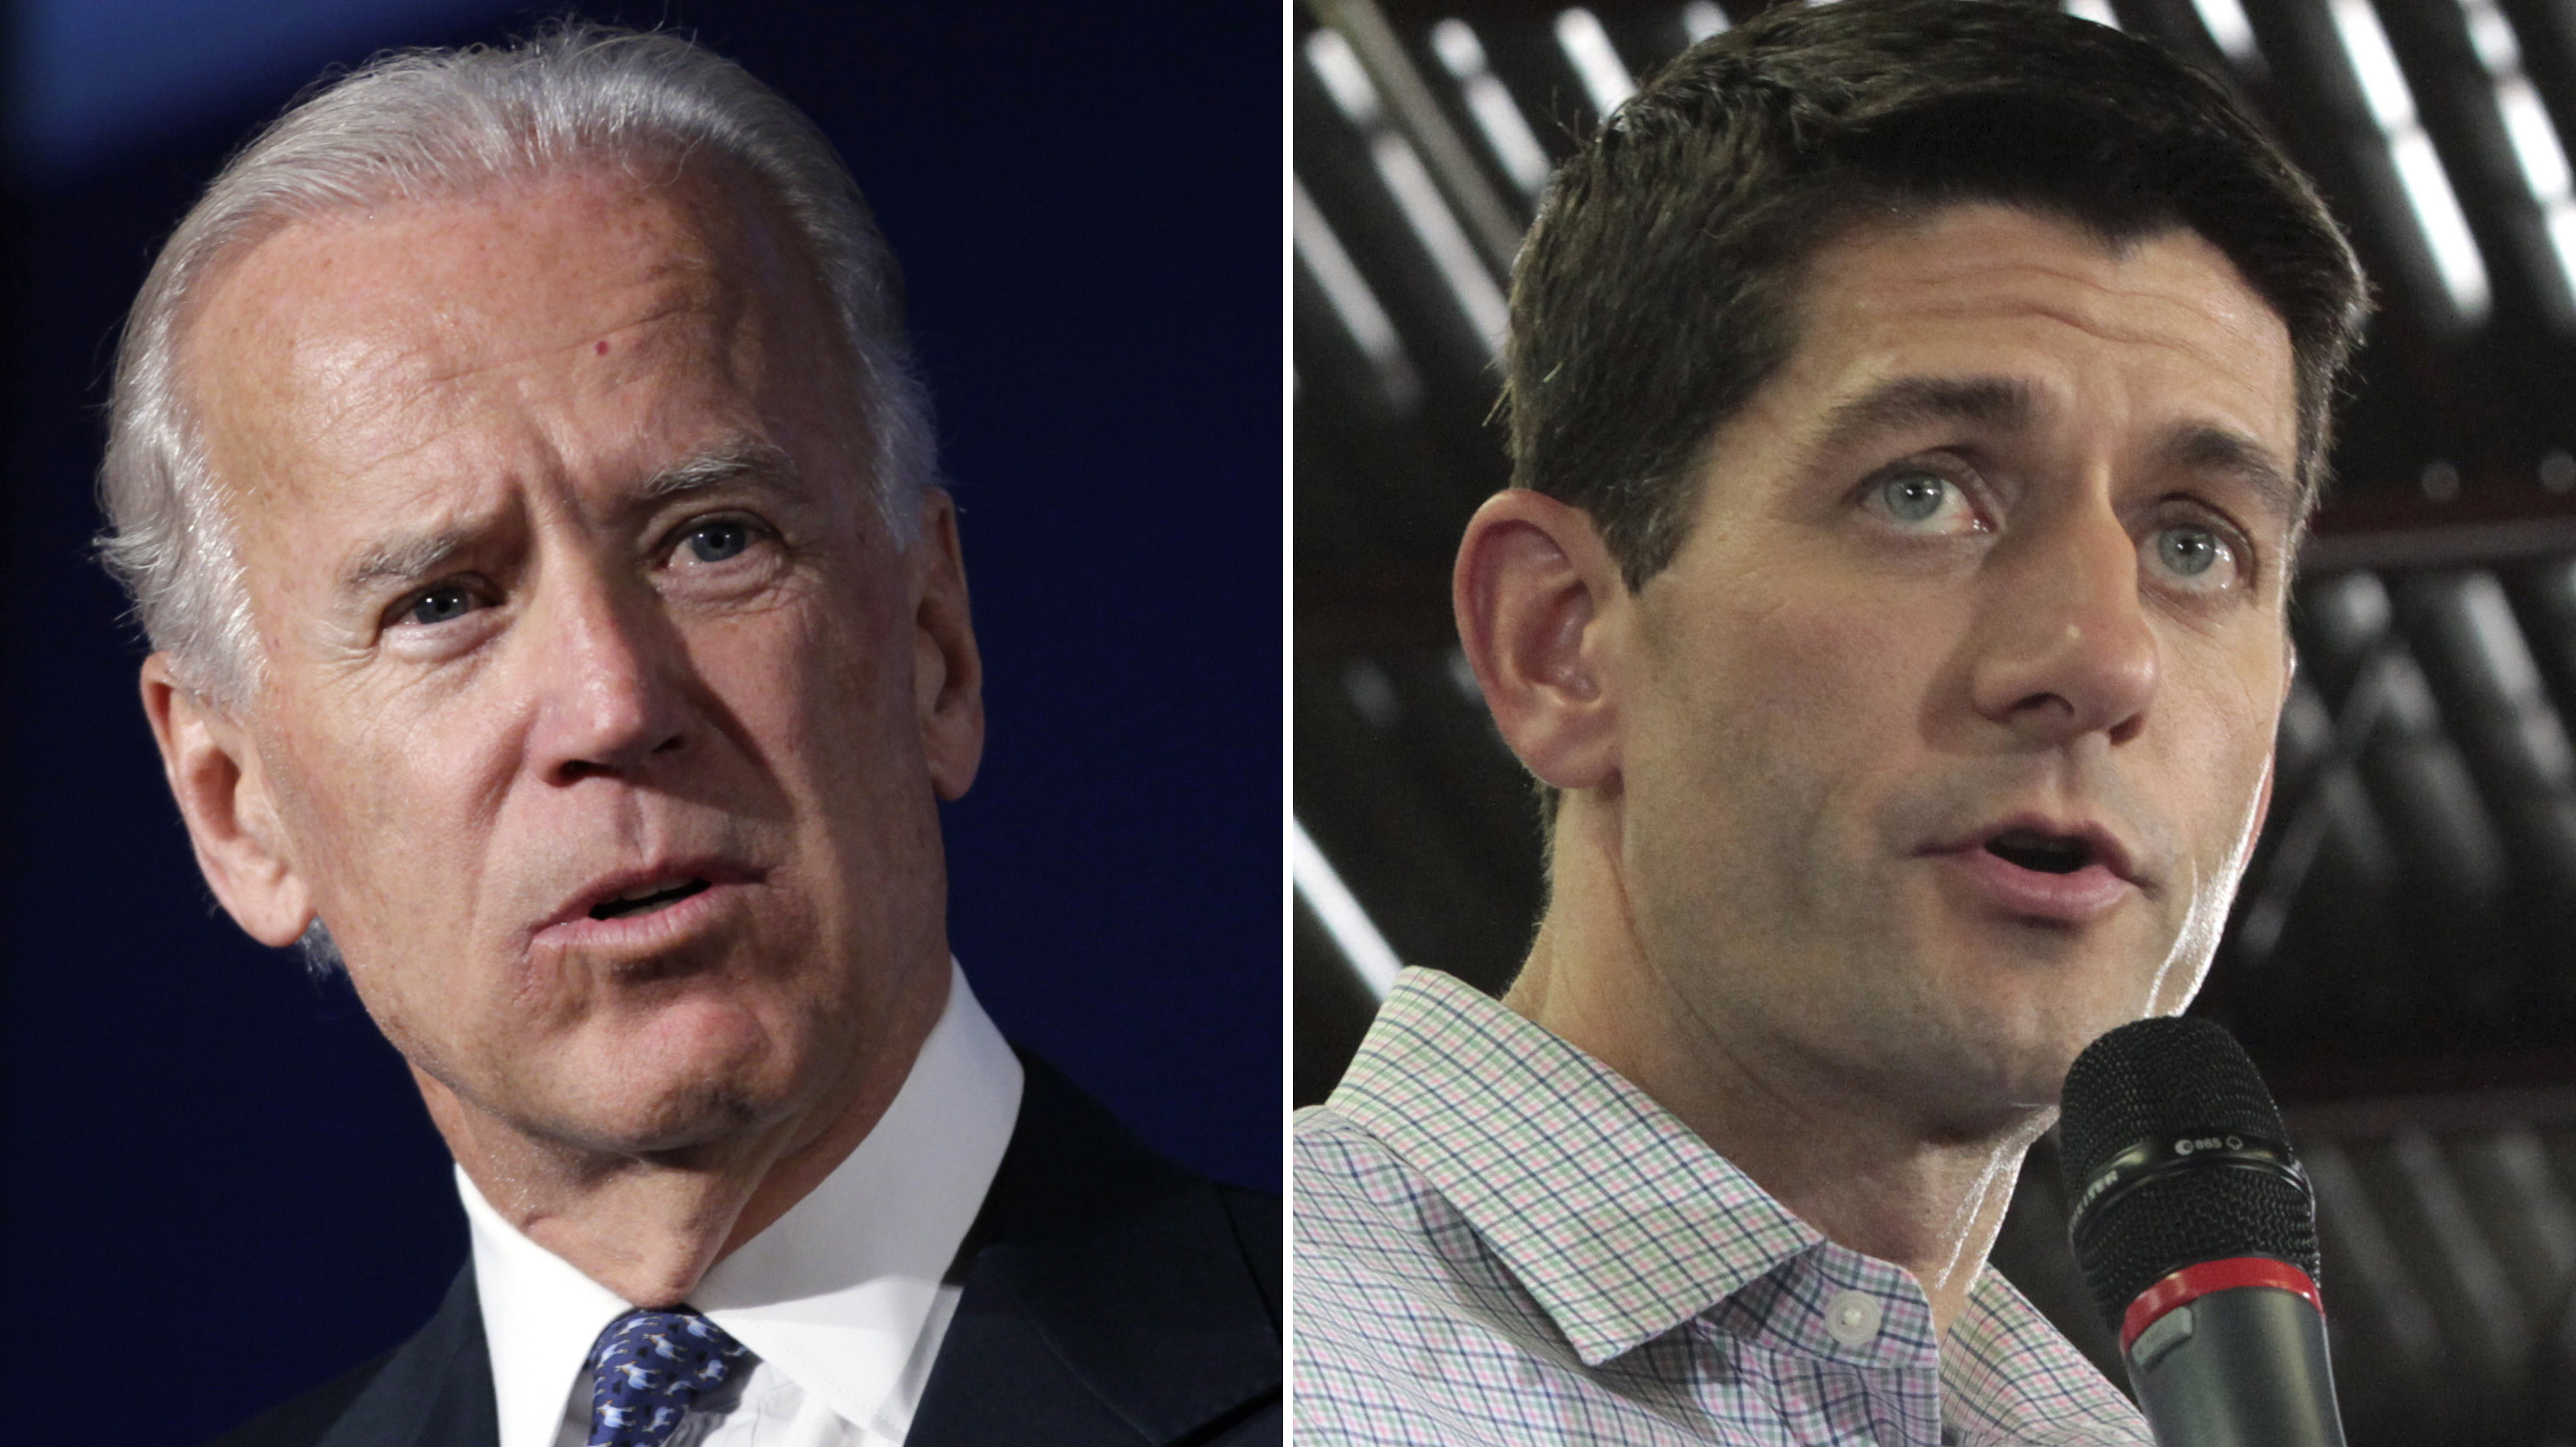 Tonight's faceoff between Vice President Joe Biden (left) and the GOP vice presidential nominee, Rep. Paul Ryan of Wisconsin, in Kentucky will likely be an important table-setter ahead of next week's second presidential debate.